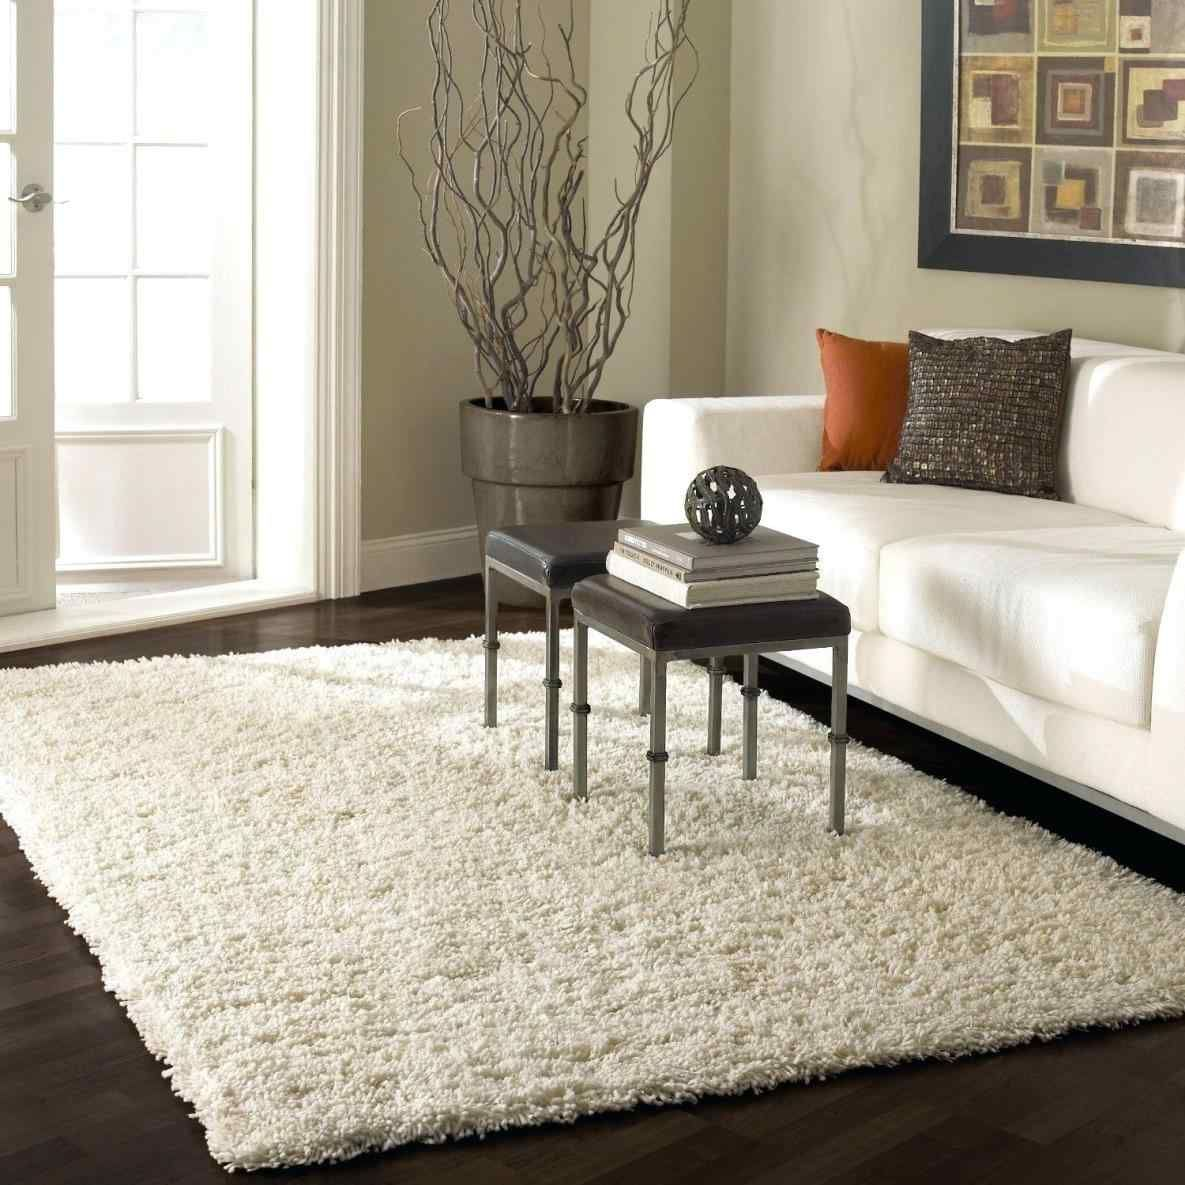 13 Best Rugs Ideas For Dark Hardwood Floors Breakpr Rugs In Living Room Living Room Carpet White Shag Rug